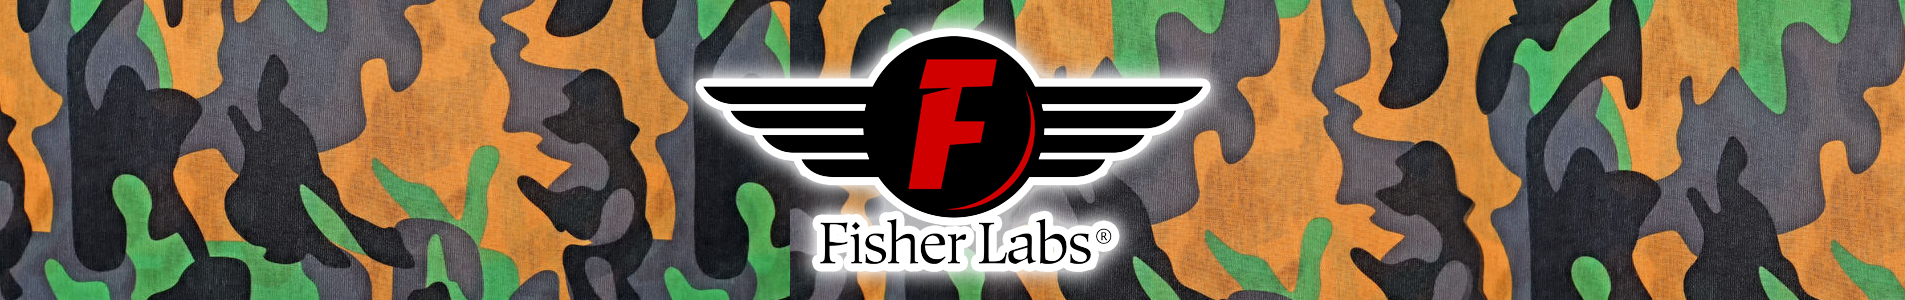 FISHER-LABS